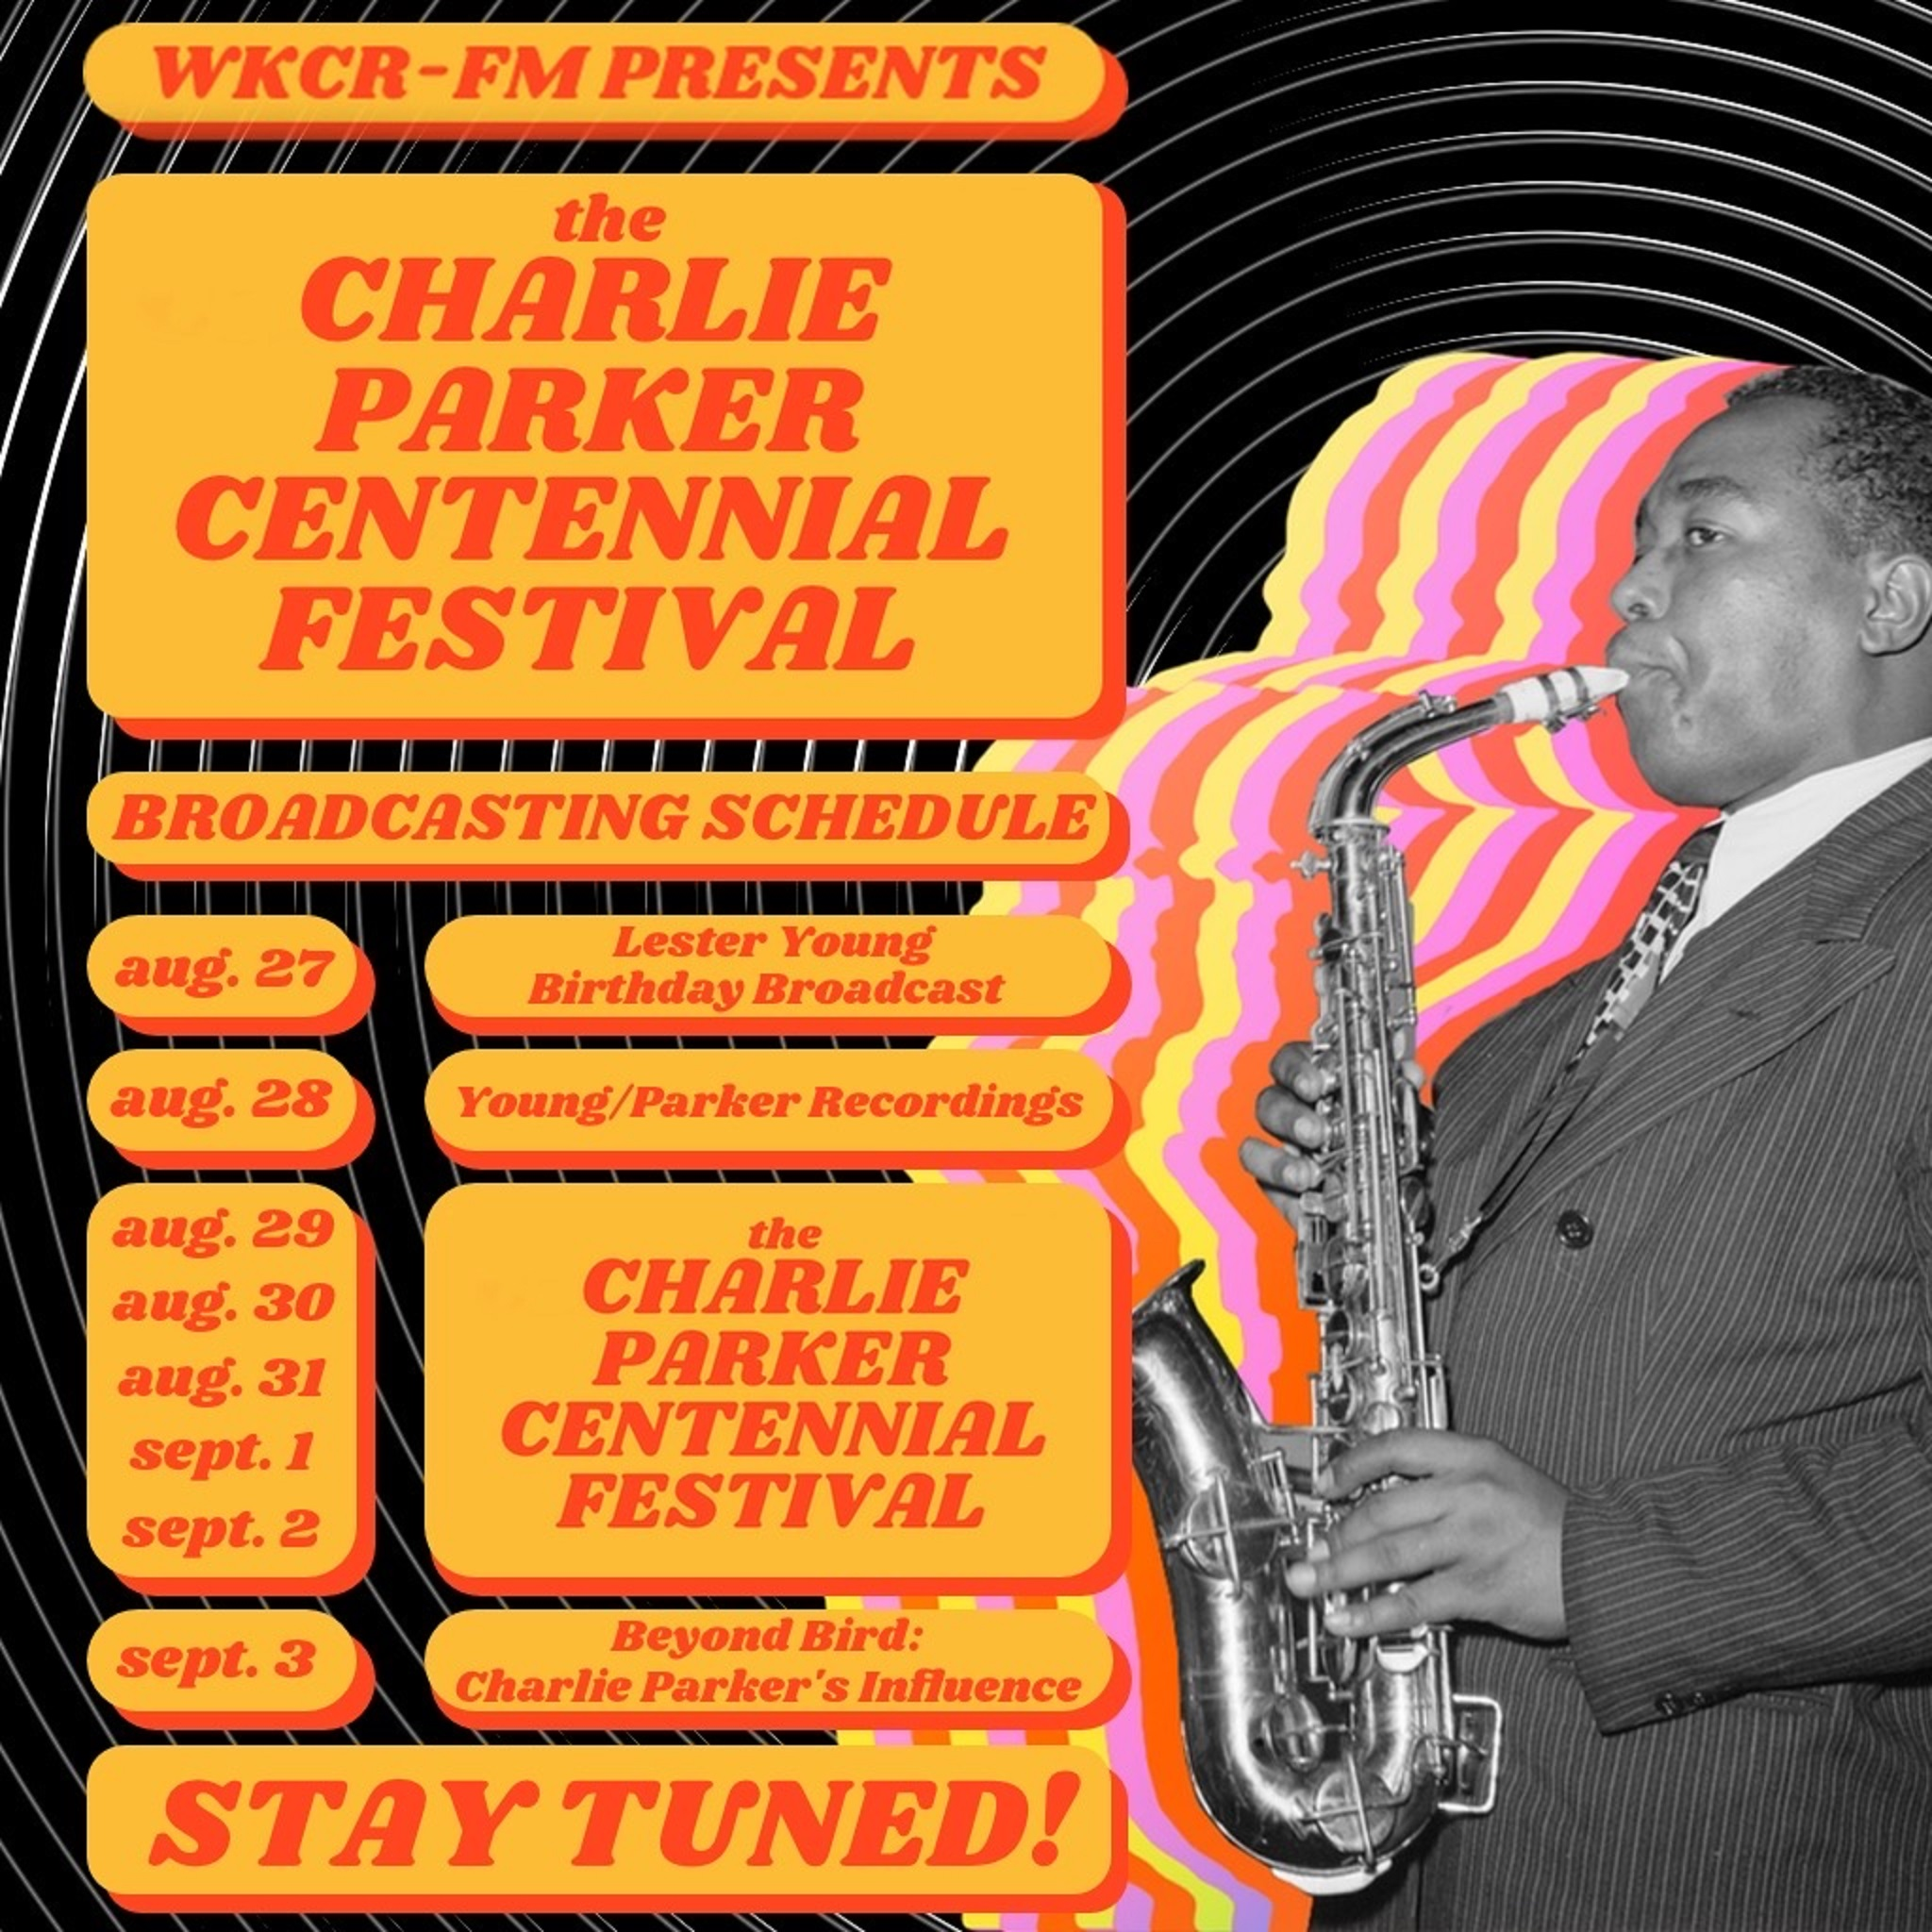 WKCR-FM Presents The Charlie Parker Centennial Festival